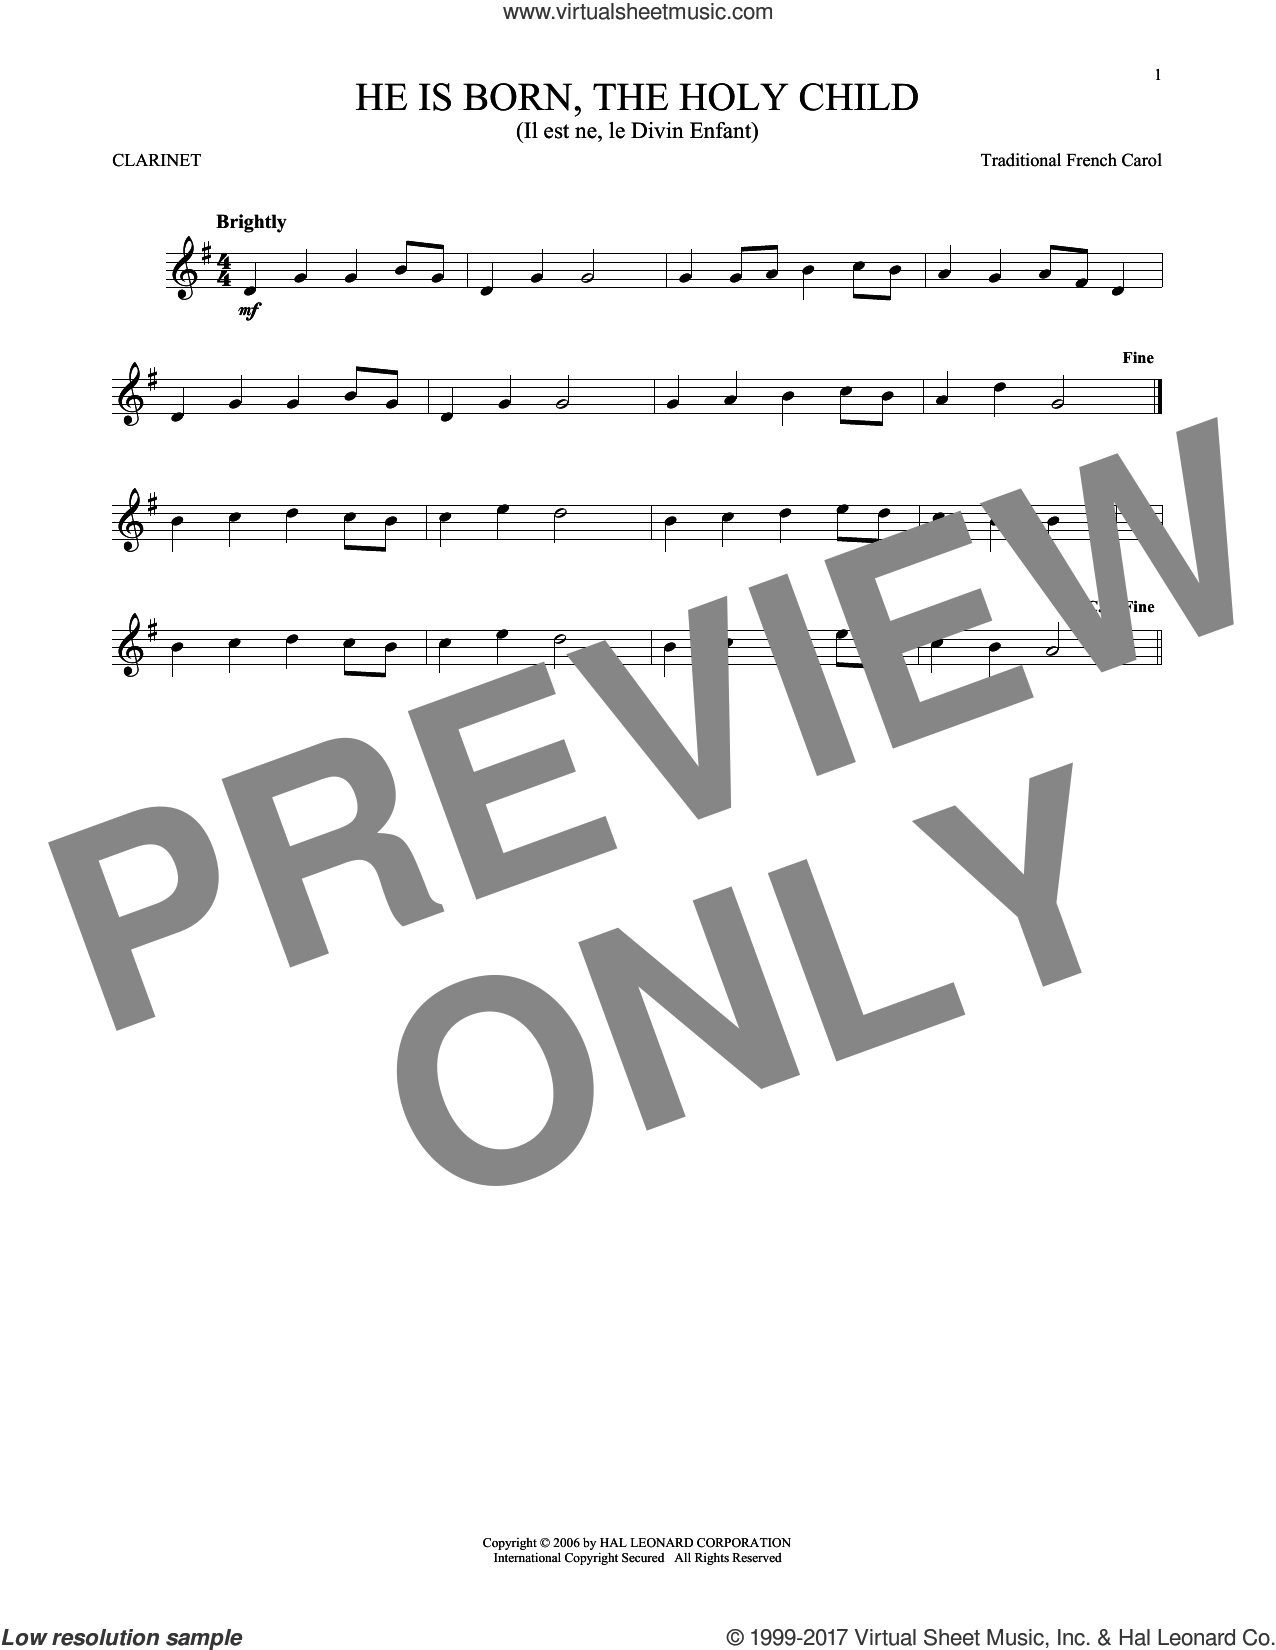 He Is Born, The Holy Child (Il Est Ne, Le Divin Enfant) sheet music for clarinet solo. Score Image Preview.